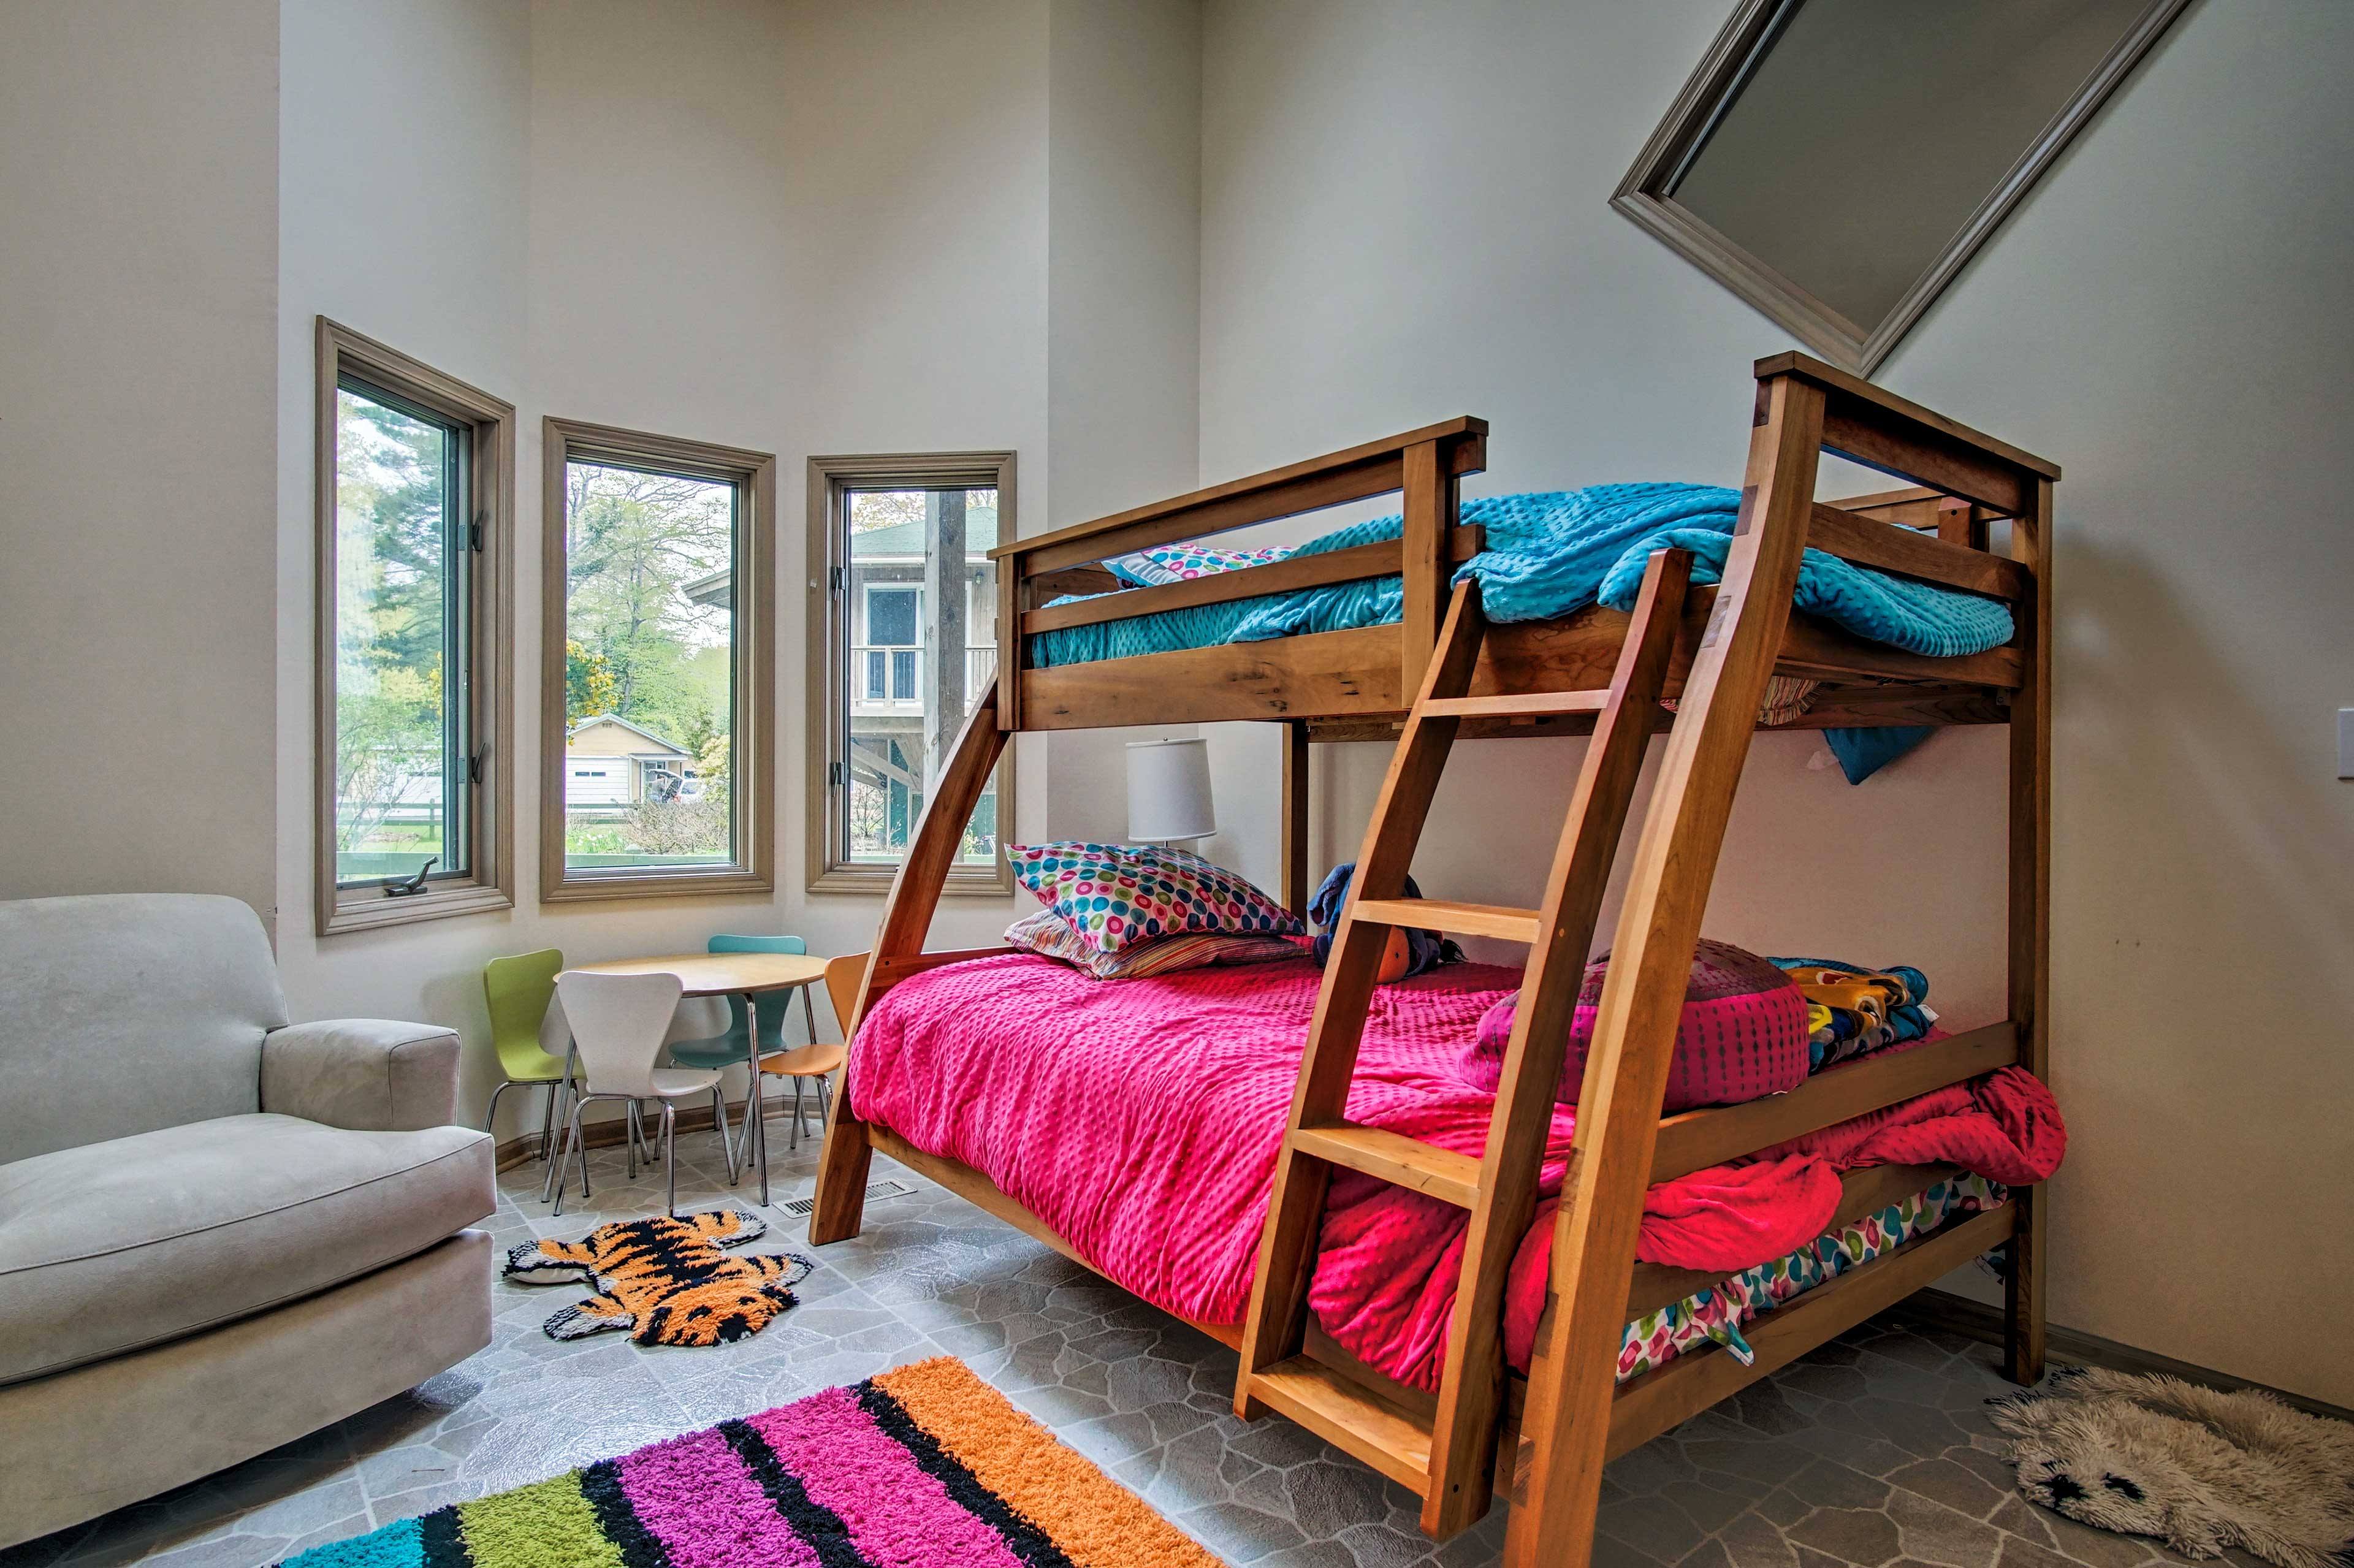 Kiddos will love sharing this twin-over-full bunk bed!